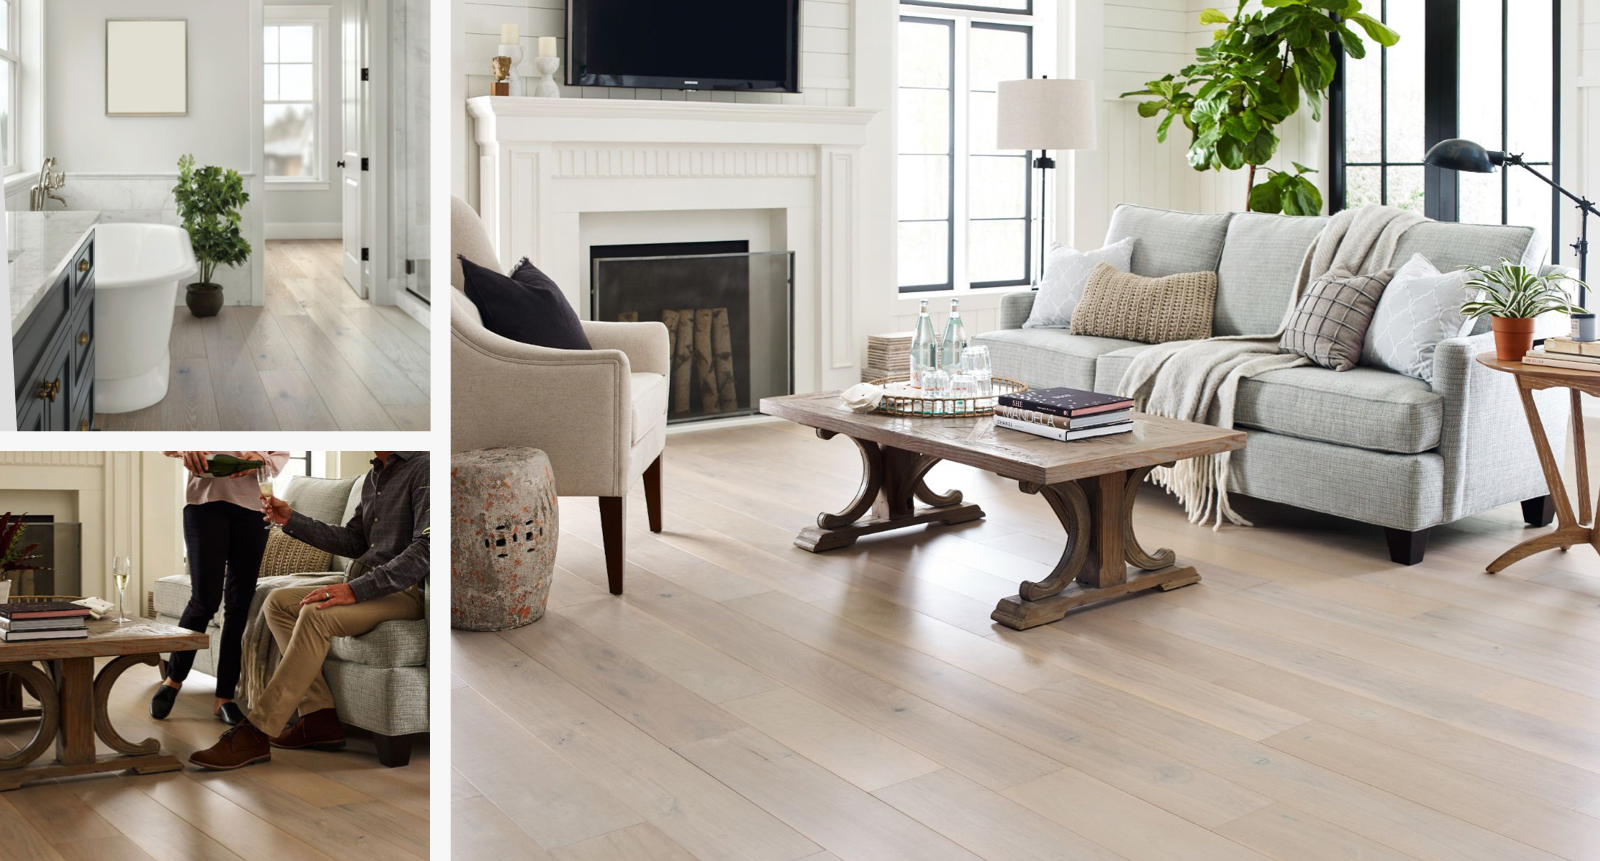 Floorte waterproof hardwood flooring for your home | McCools Flooring